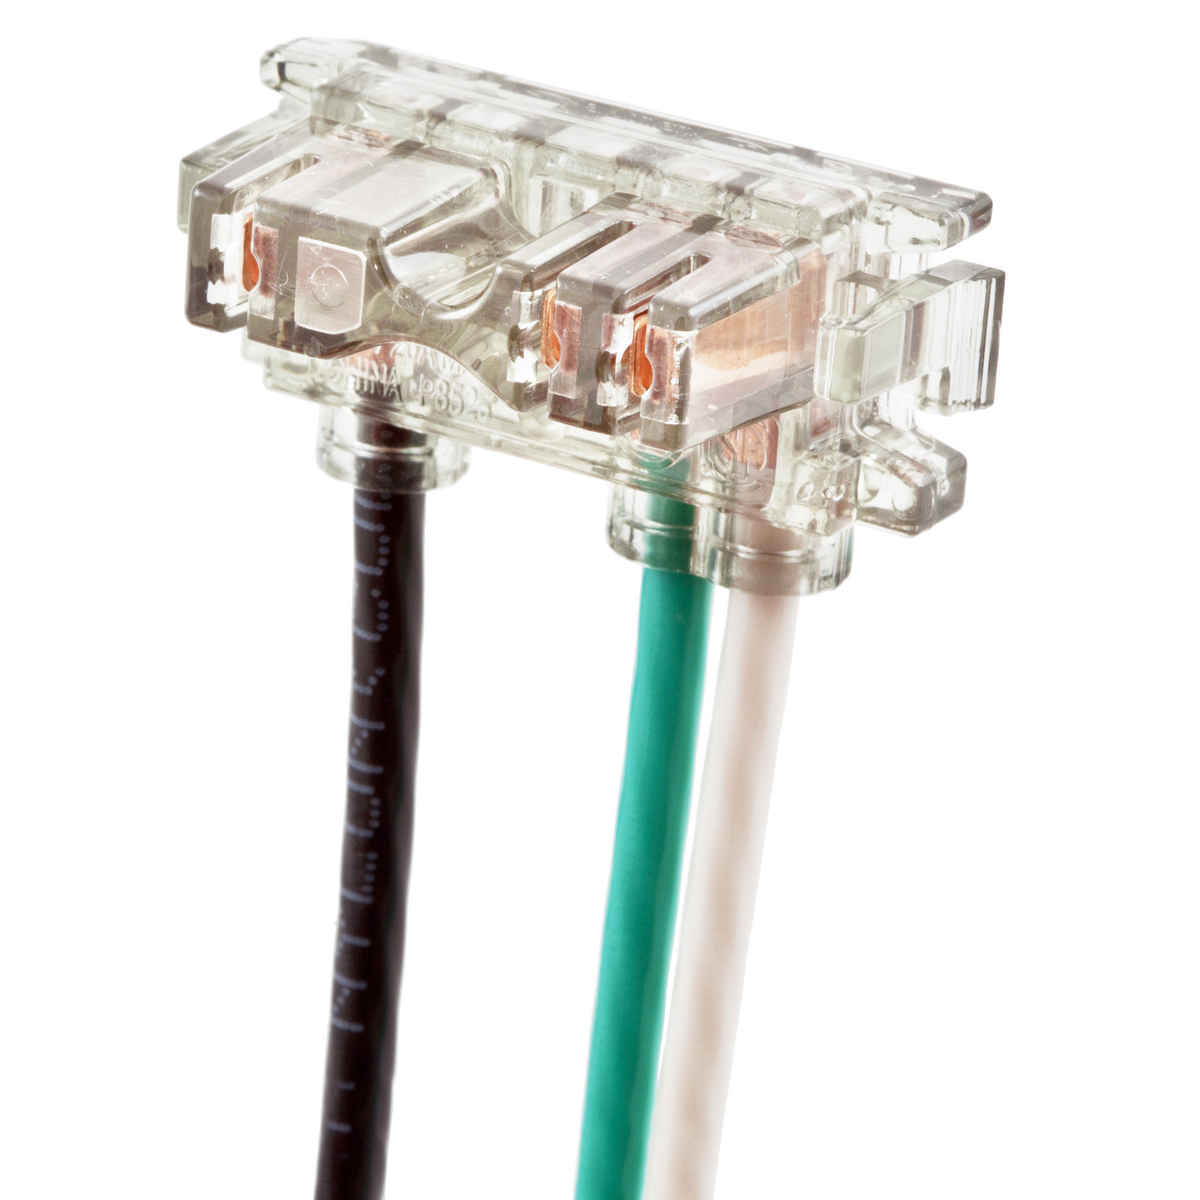 Hubbell Wiring Device Kellems, Straight Blade Devices, Receptacles,SNAP-CONNECT Connector, SNAP-CONNECT Series, 2-Pole 3-Wire Grounding, 15or 20A 125V, Stranded, Angled, With Push-On Connectors